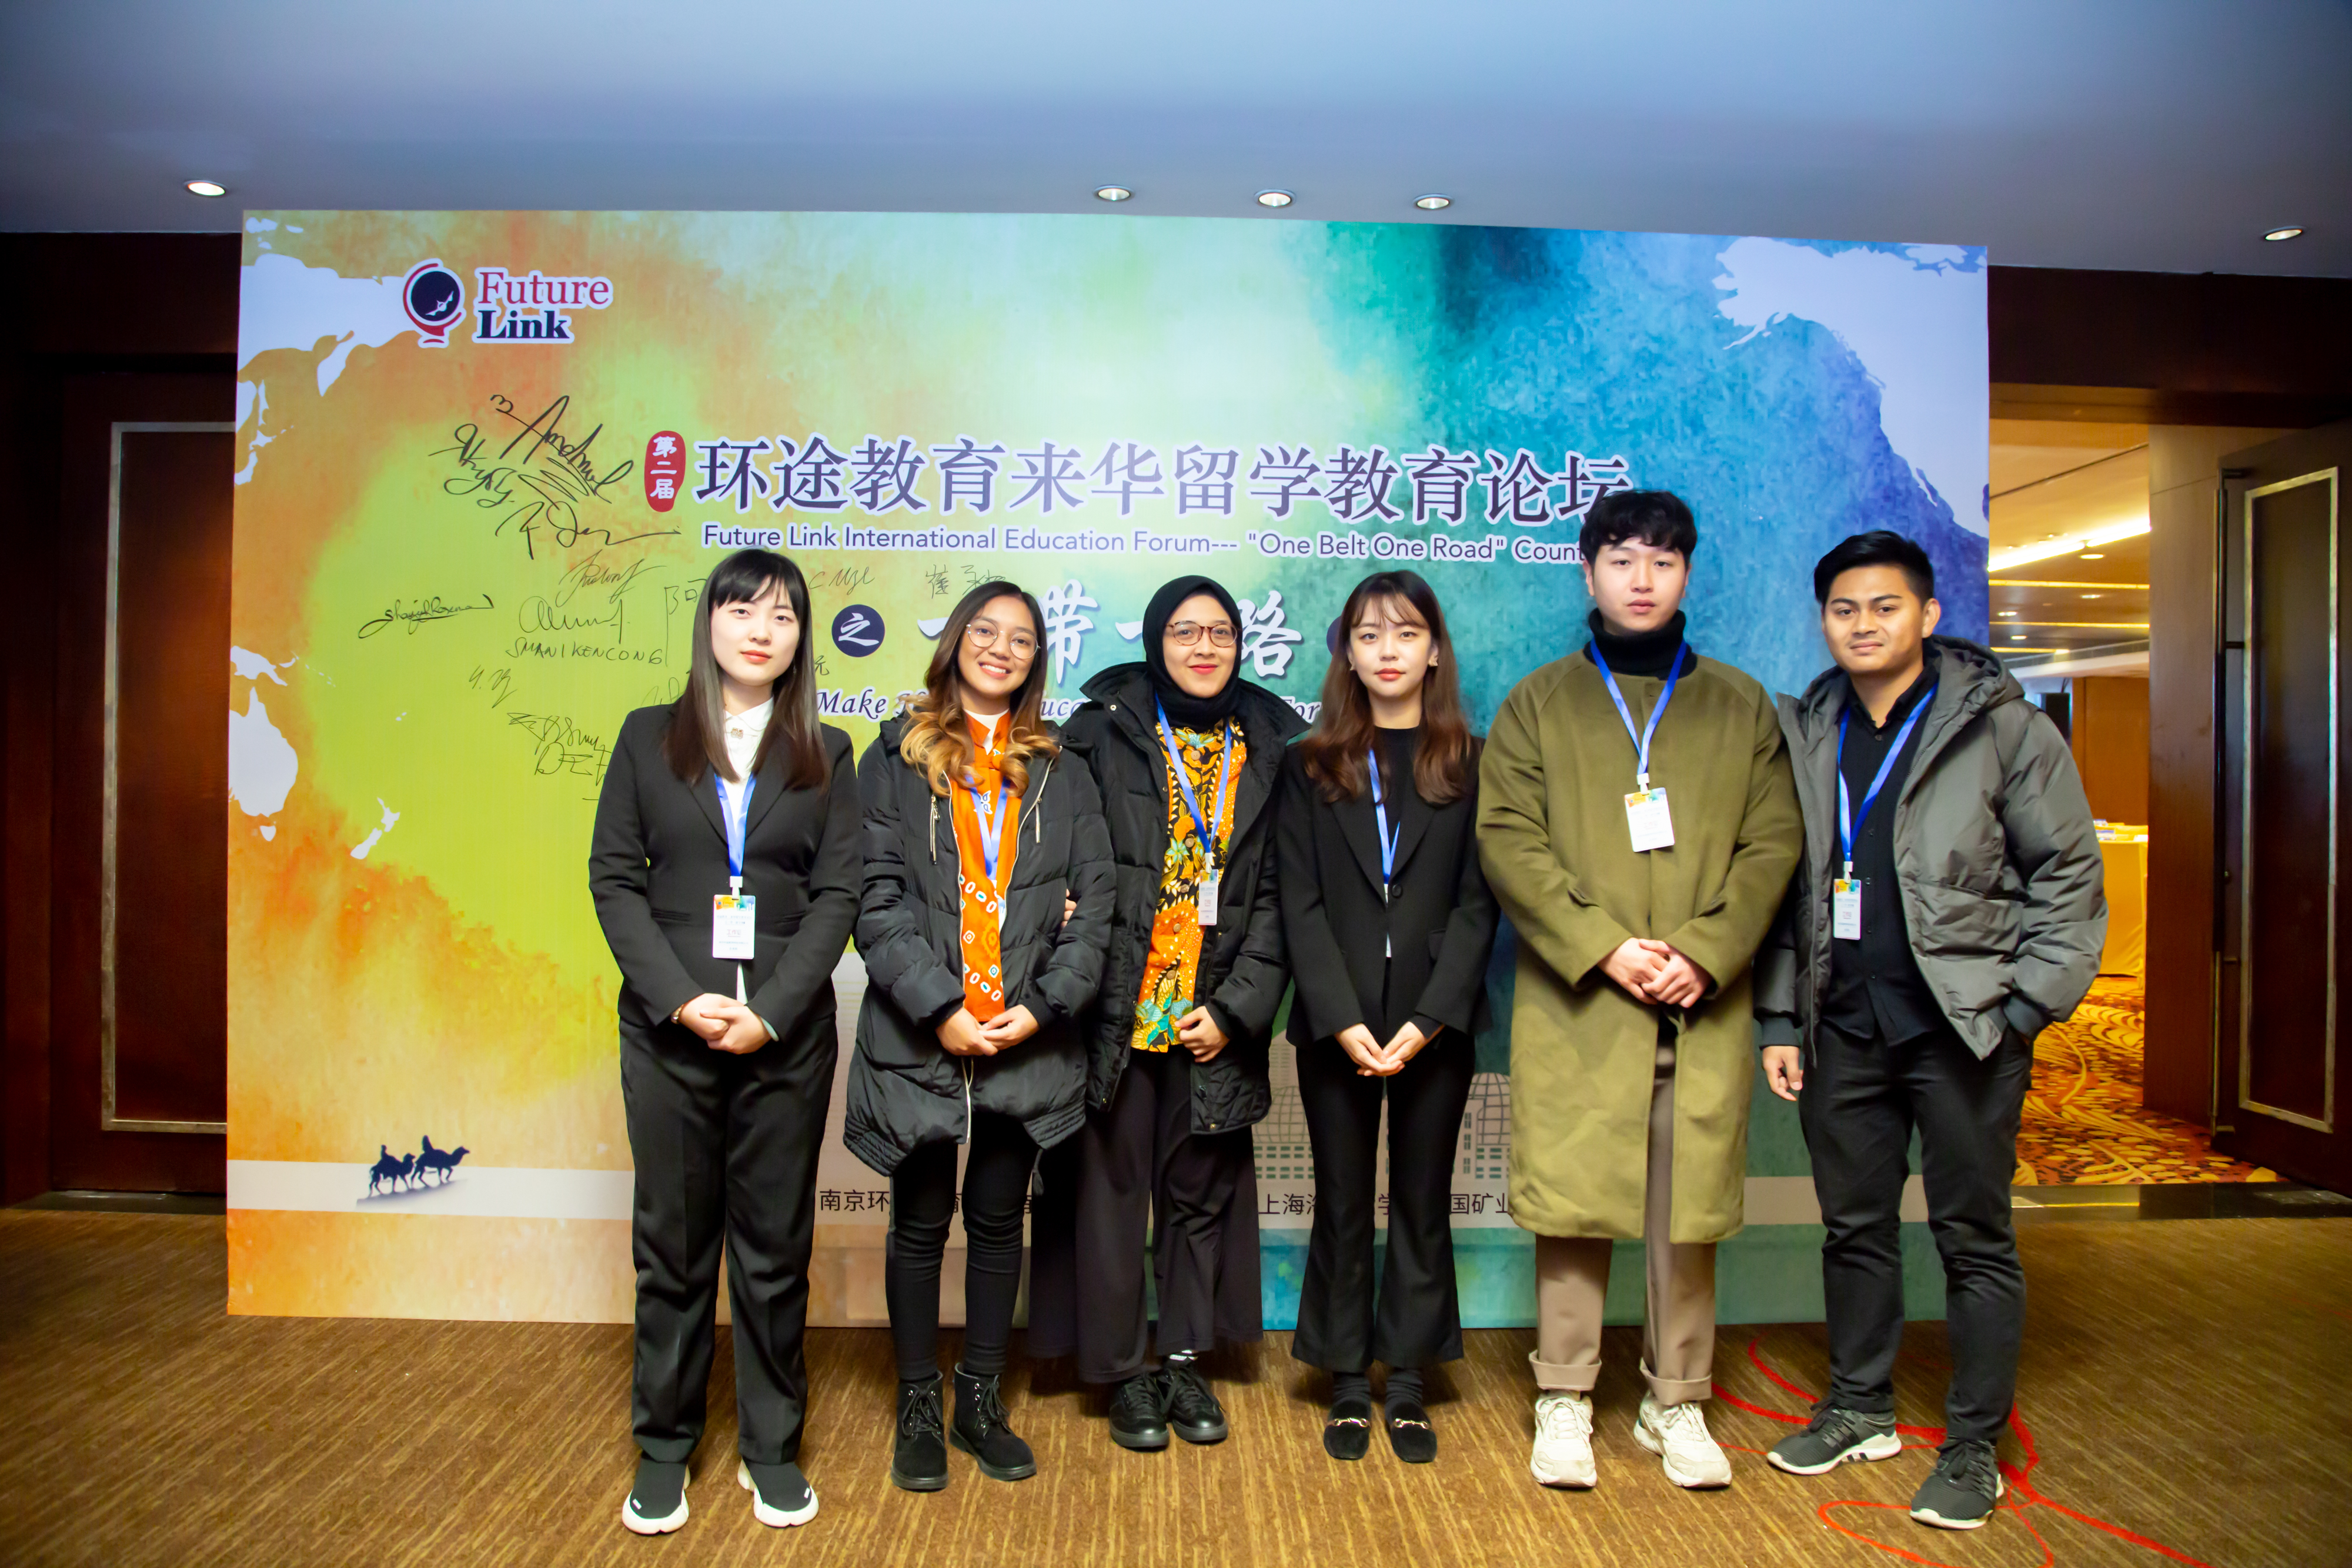 KOREA PARTNERS  IN FUTURE LINK CONFERENCE